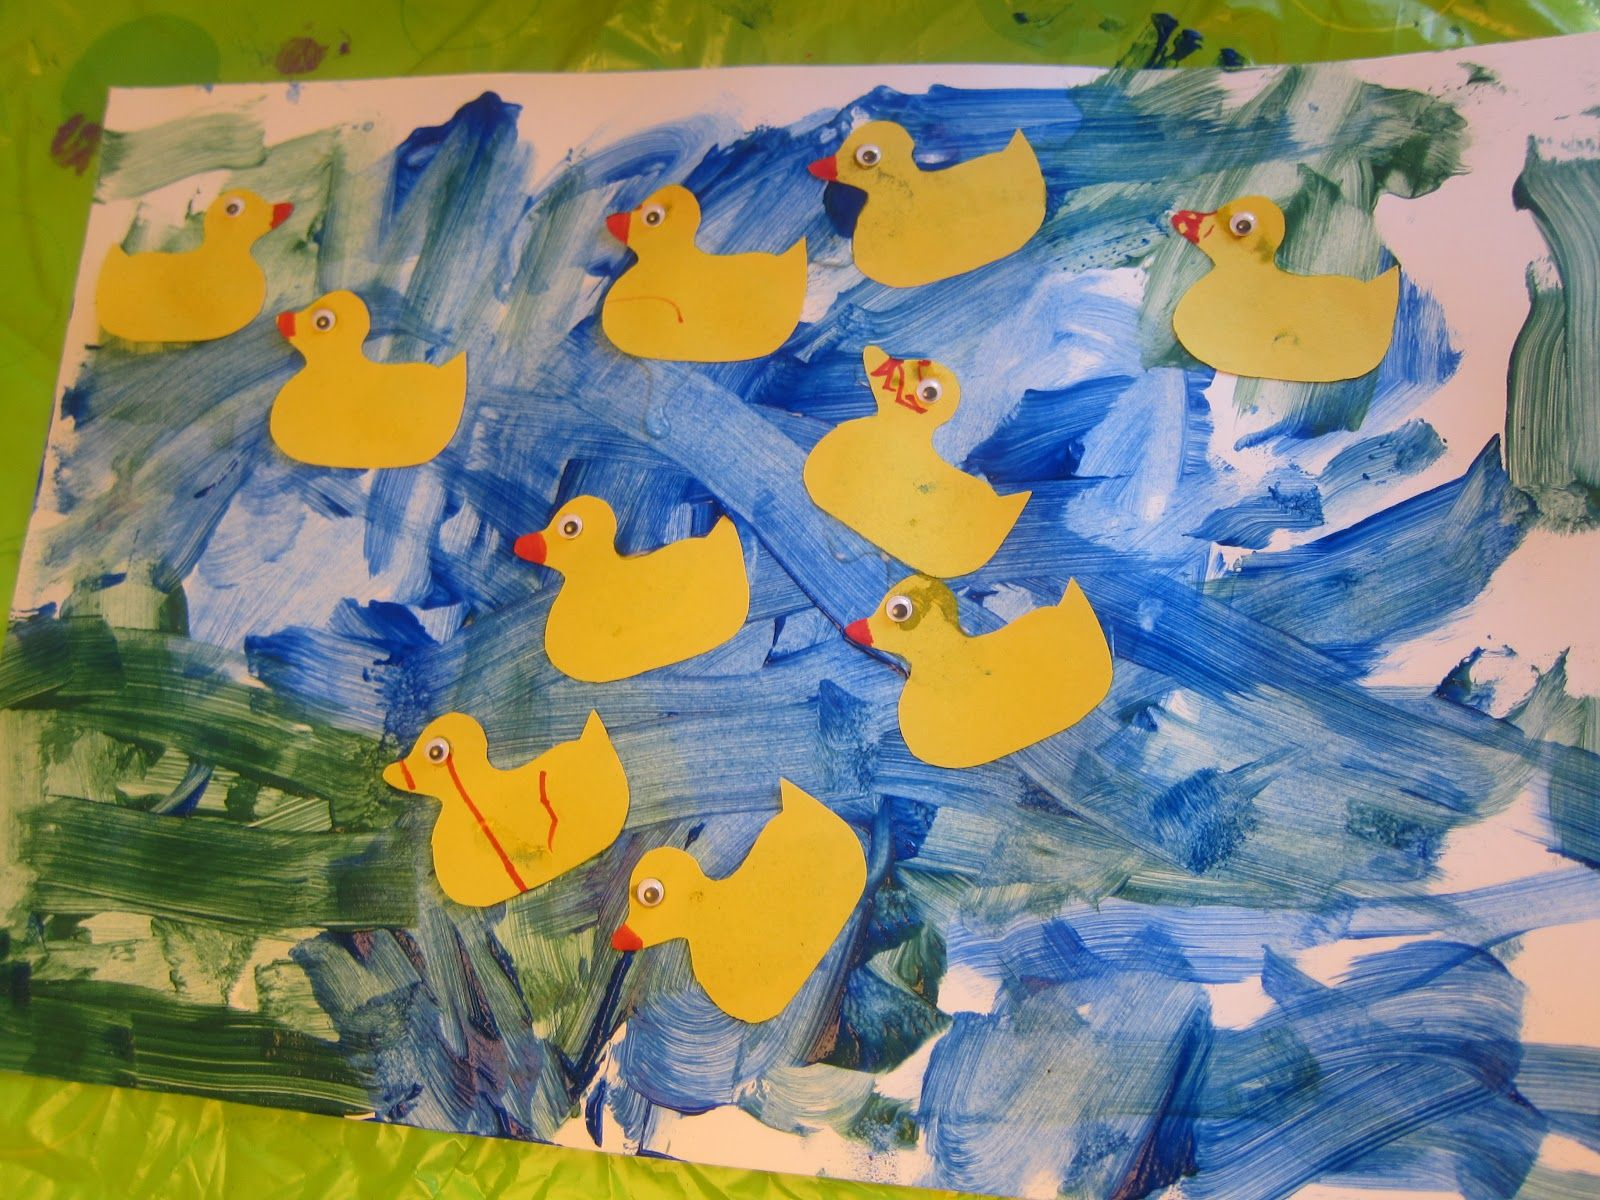 10 Little Rubber Ducks by Eric Carle Art Project and Number Matching